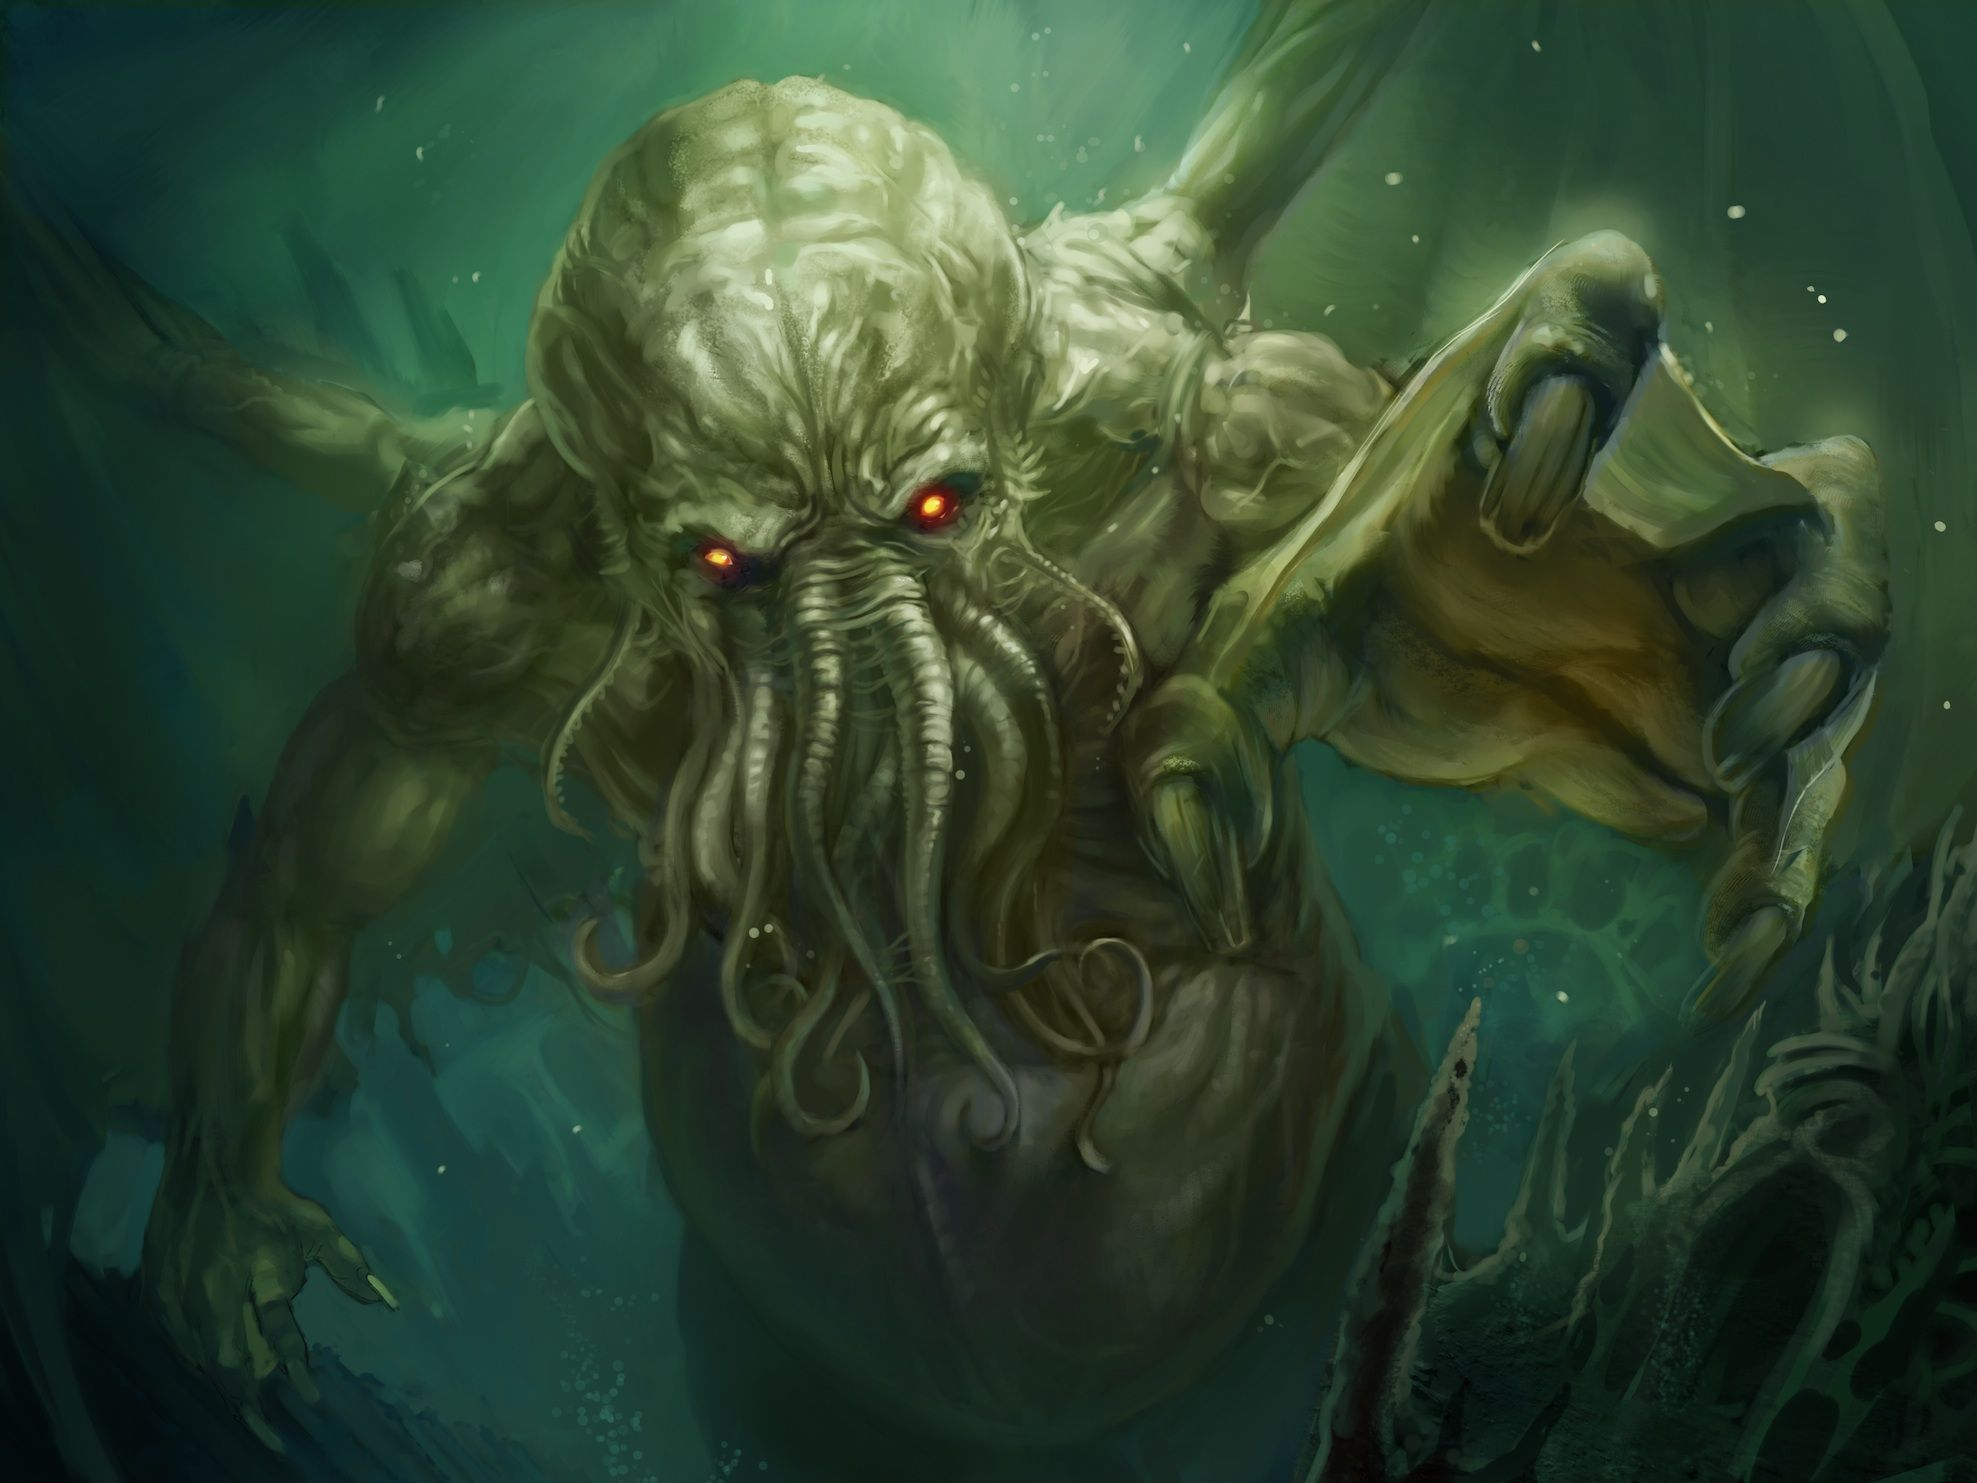 Cthulhu Rising To The Surface